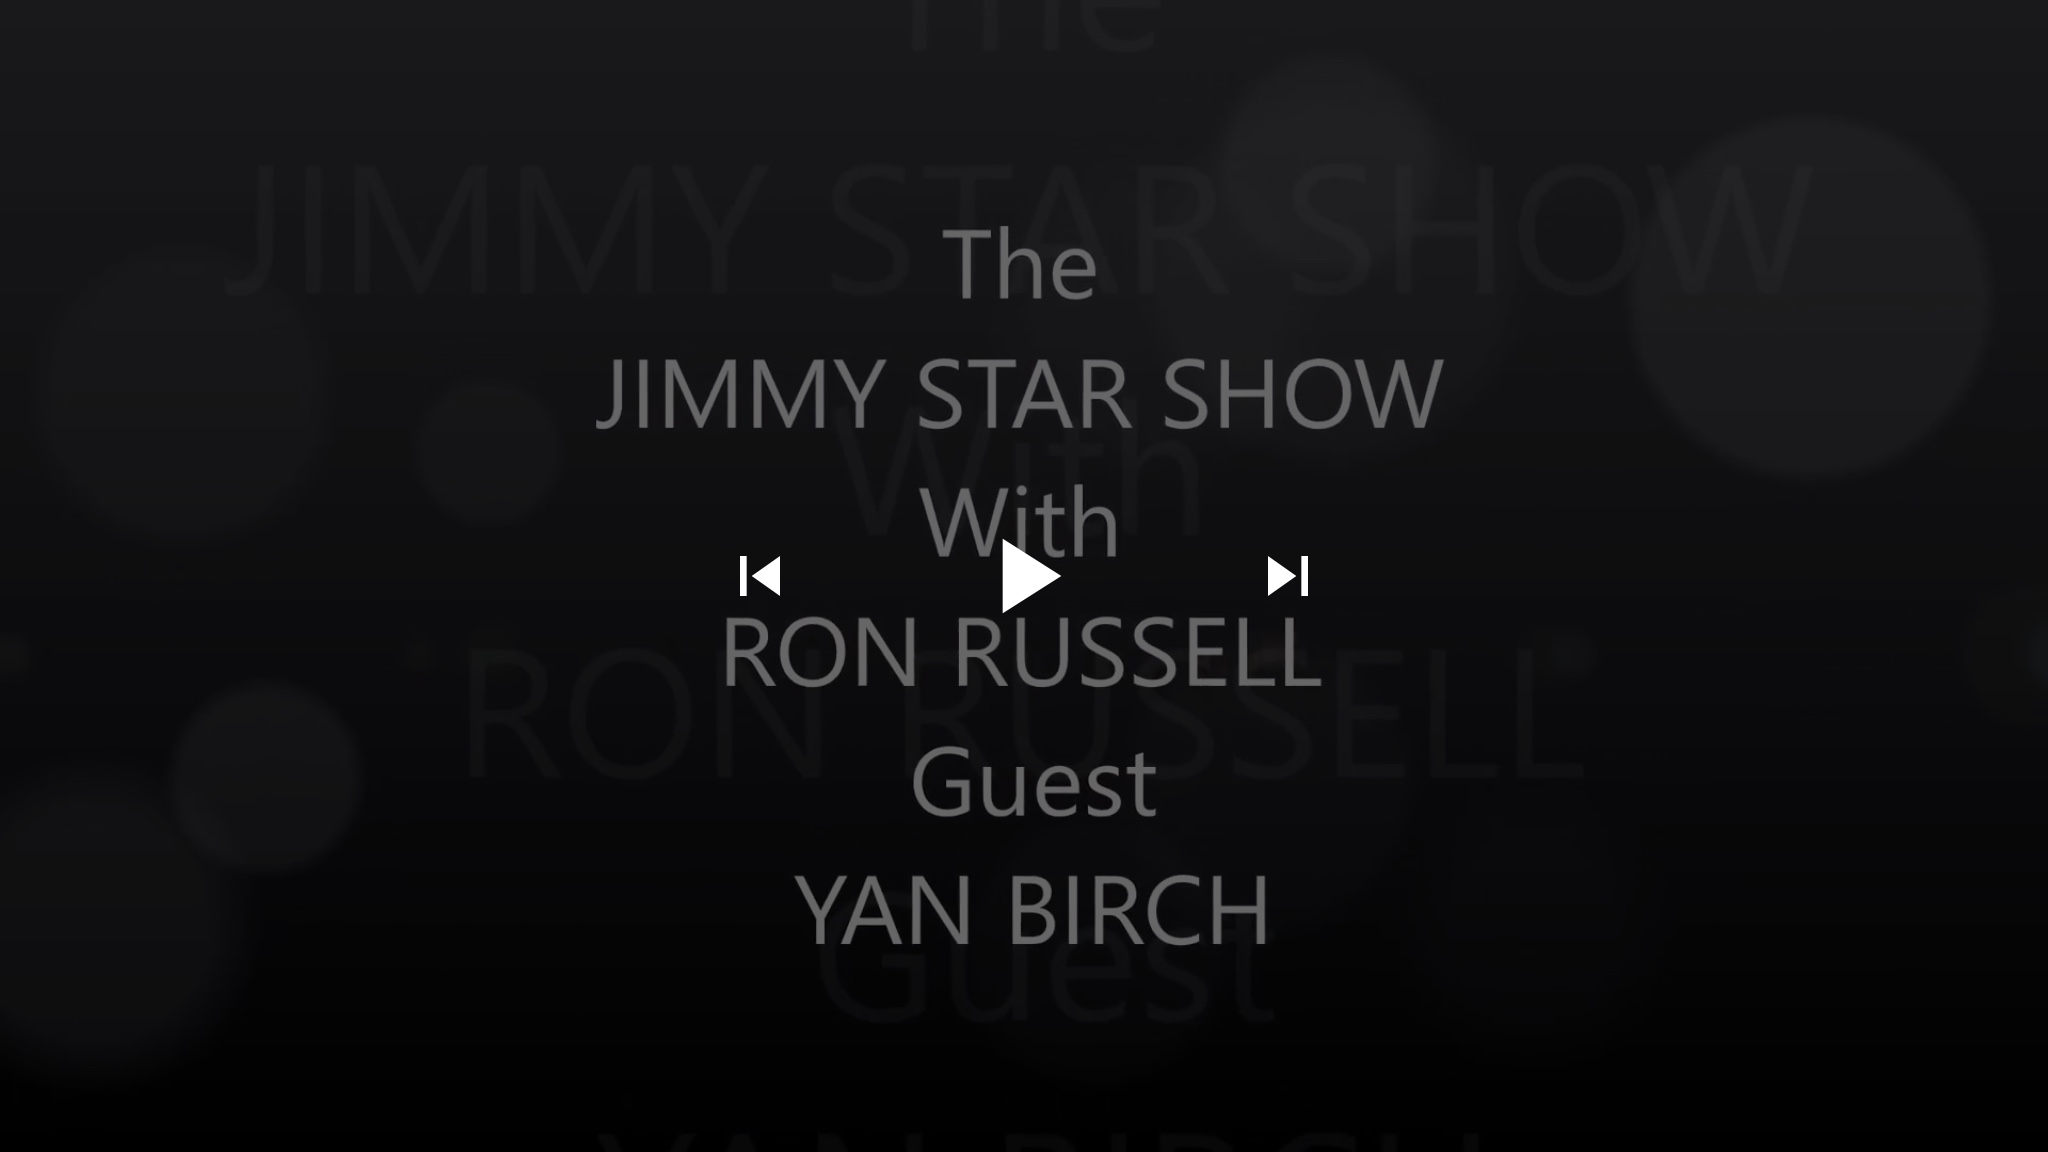 #Episode #Actor Yan Birch @YanBirch | The Jimmy Star Show with Ron Russell, Wednesday October 10, 2018 #jimmystarshow